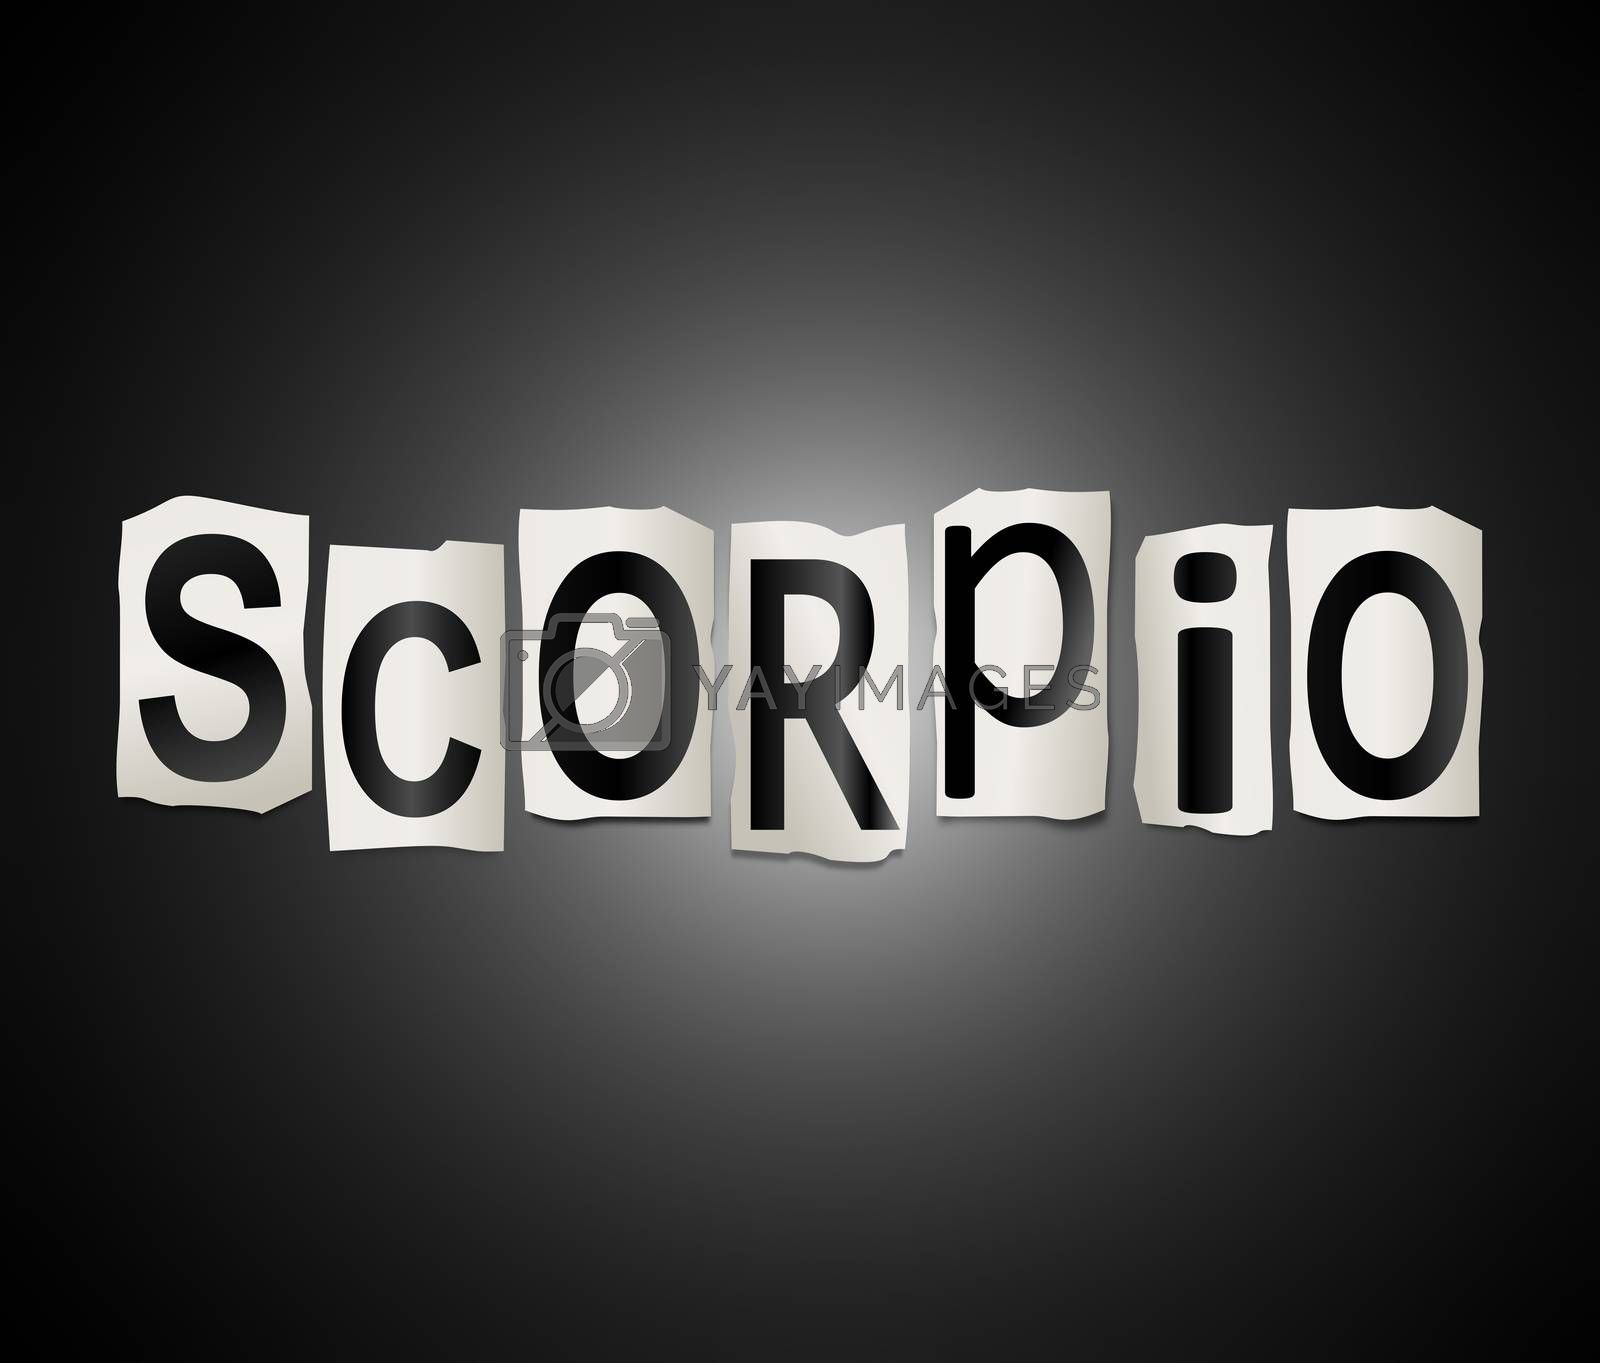 Illustration depicting a set of cut out printed letters arranged to form the word scorpio.